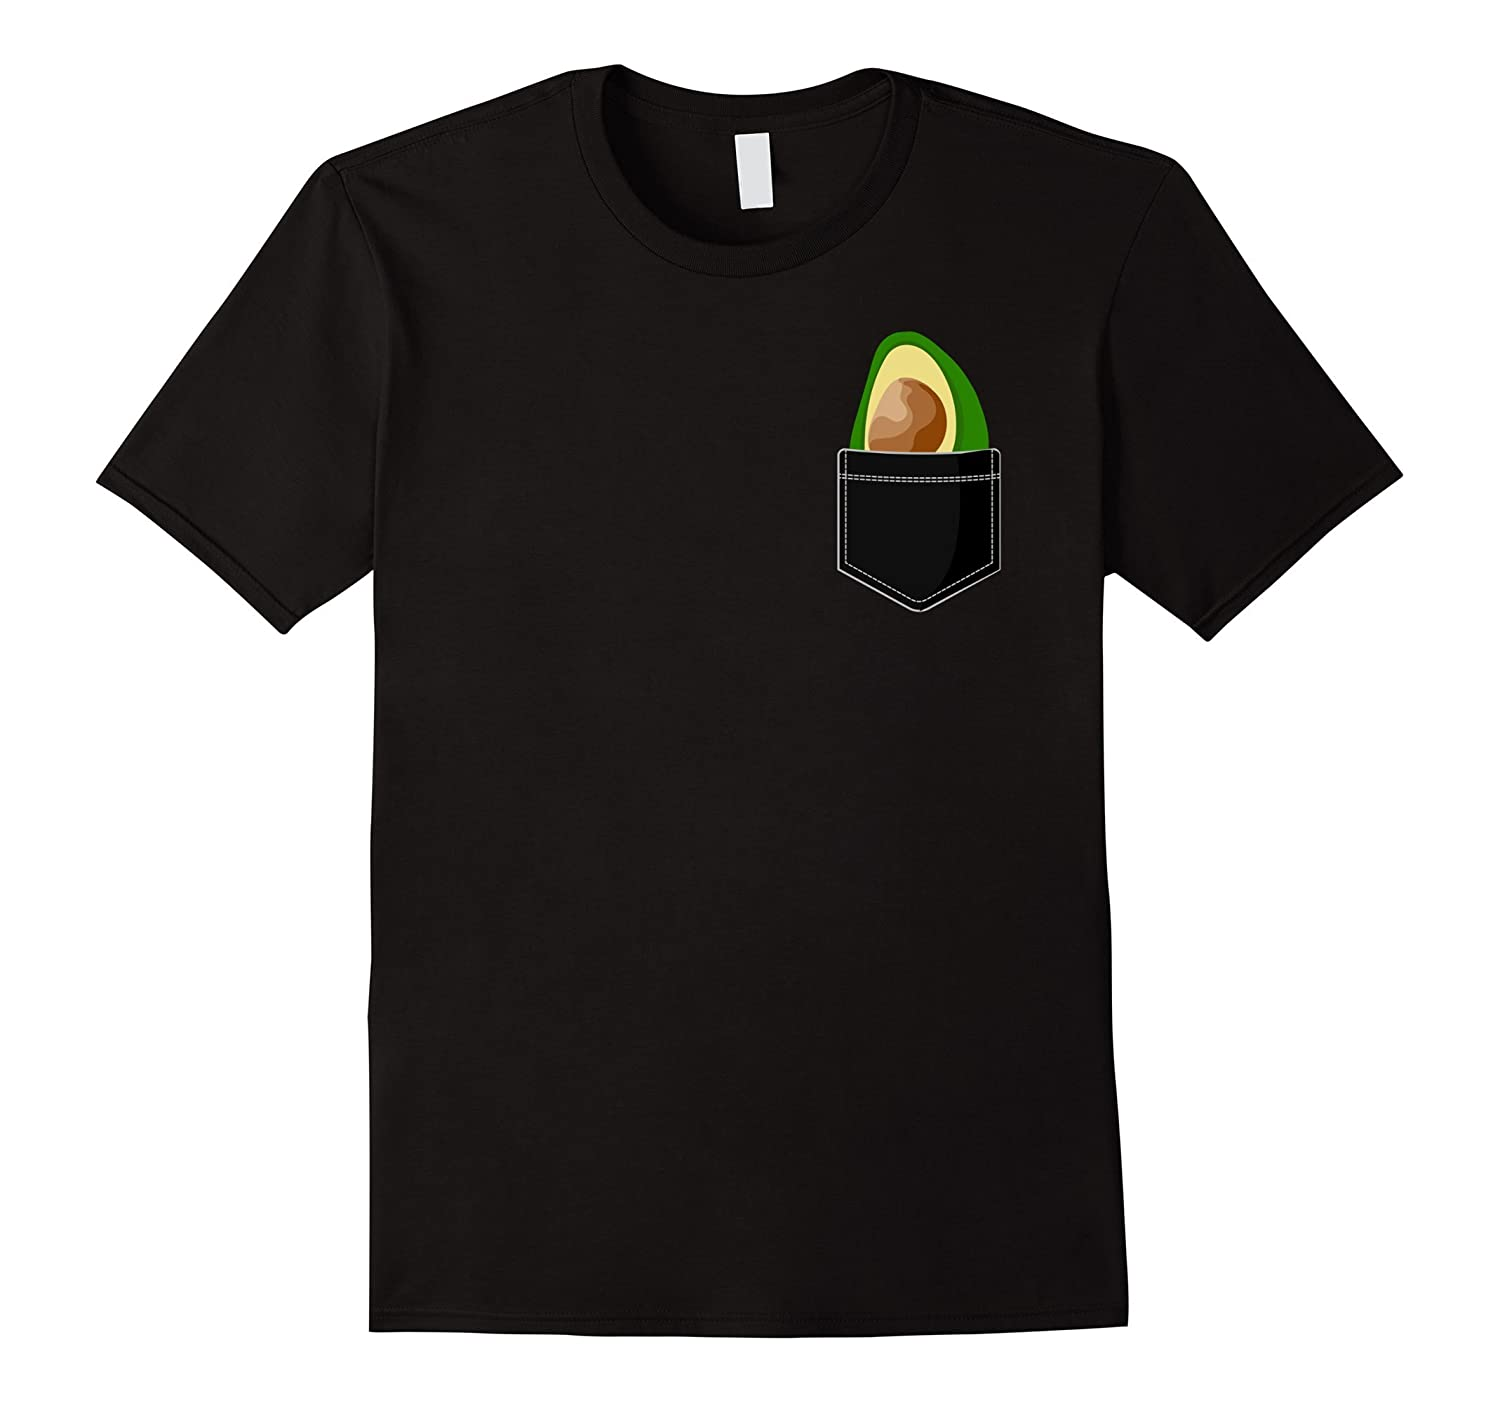 Pocket Avocado T-Shirt - Funny Avocado Shirt-TD